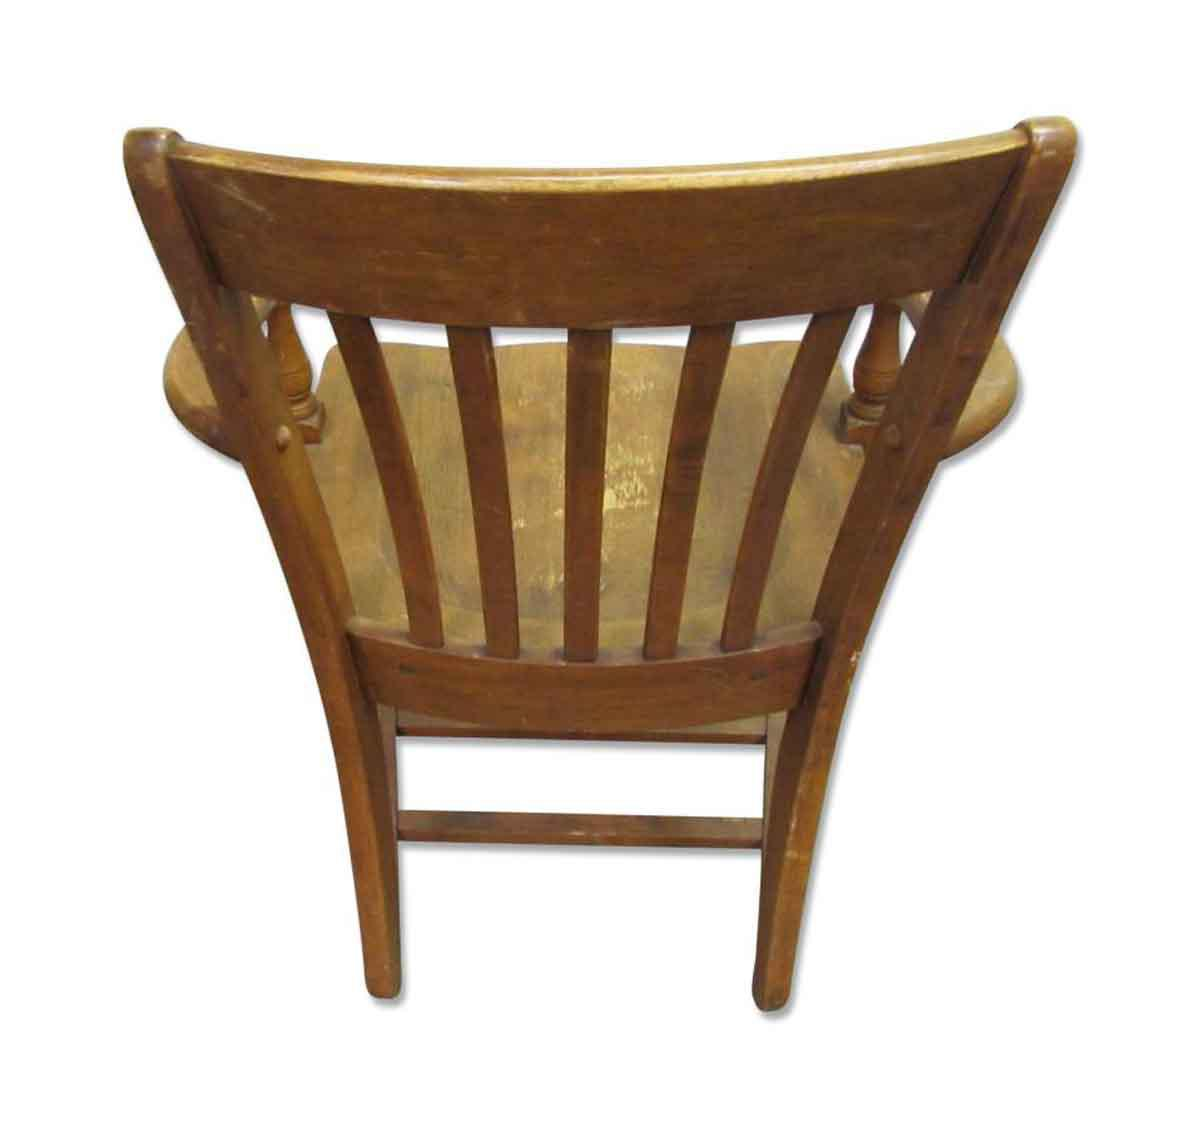 vintage wooden chairs compact table and ikea chair chairish for sale image 4 of 7